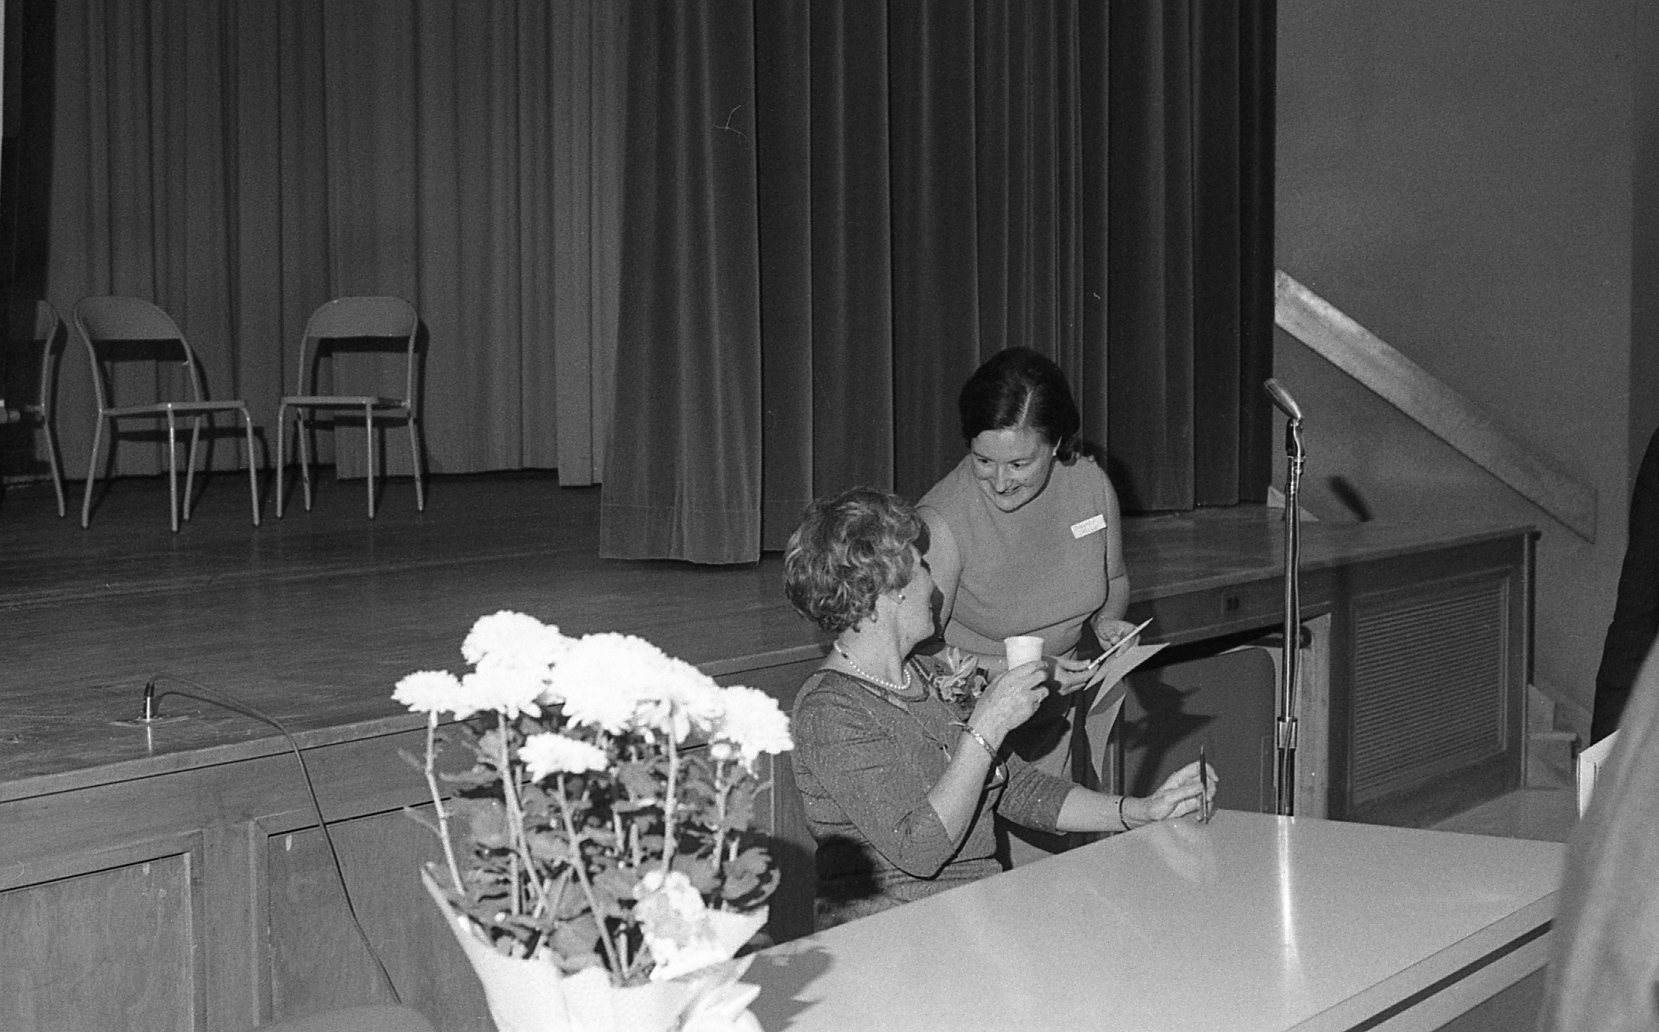 Patricia Hart, seated, and unknown woman (Photo: Bill Chambers)